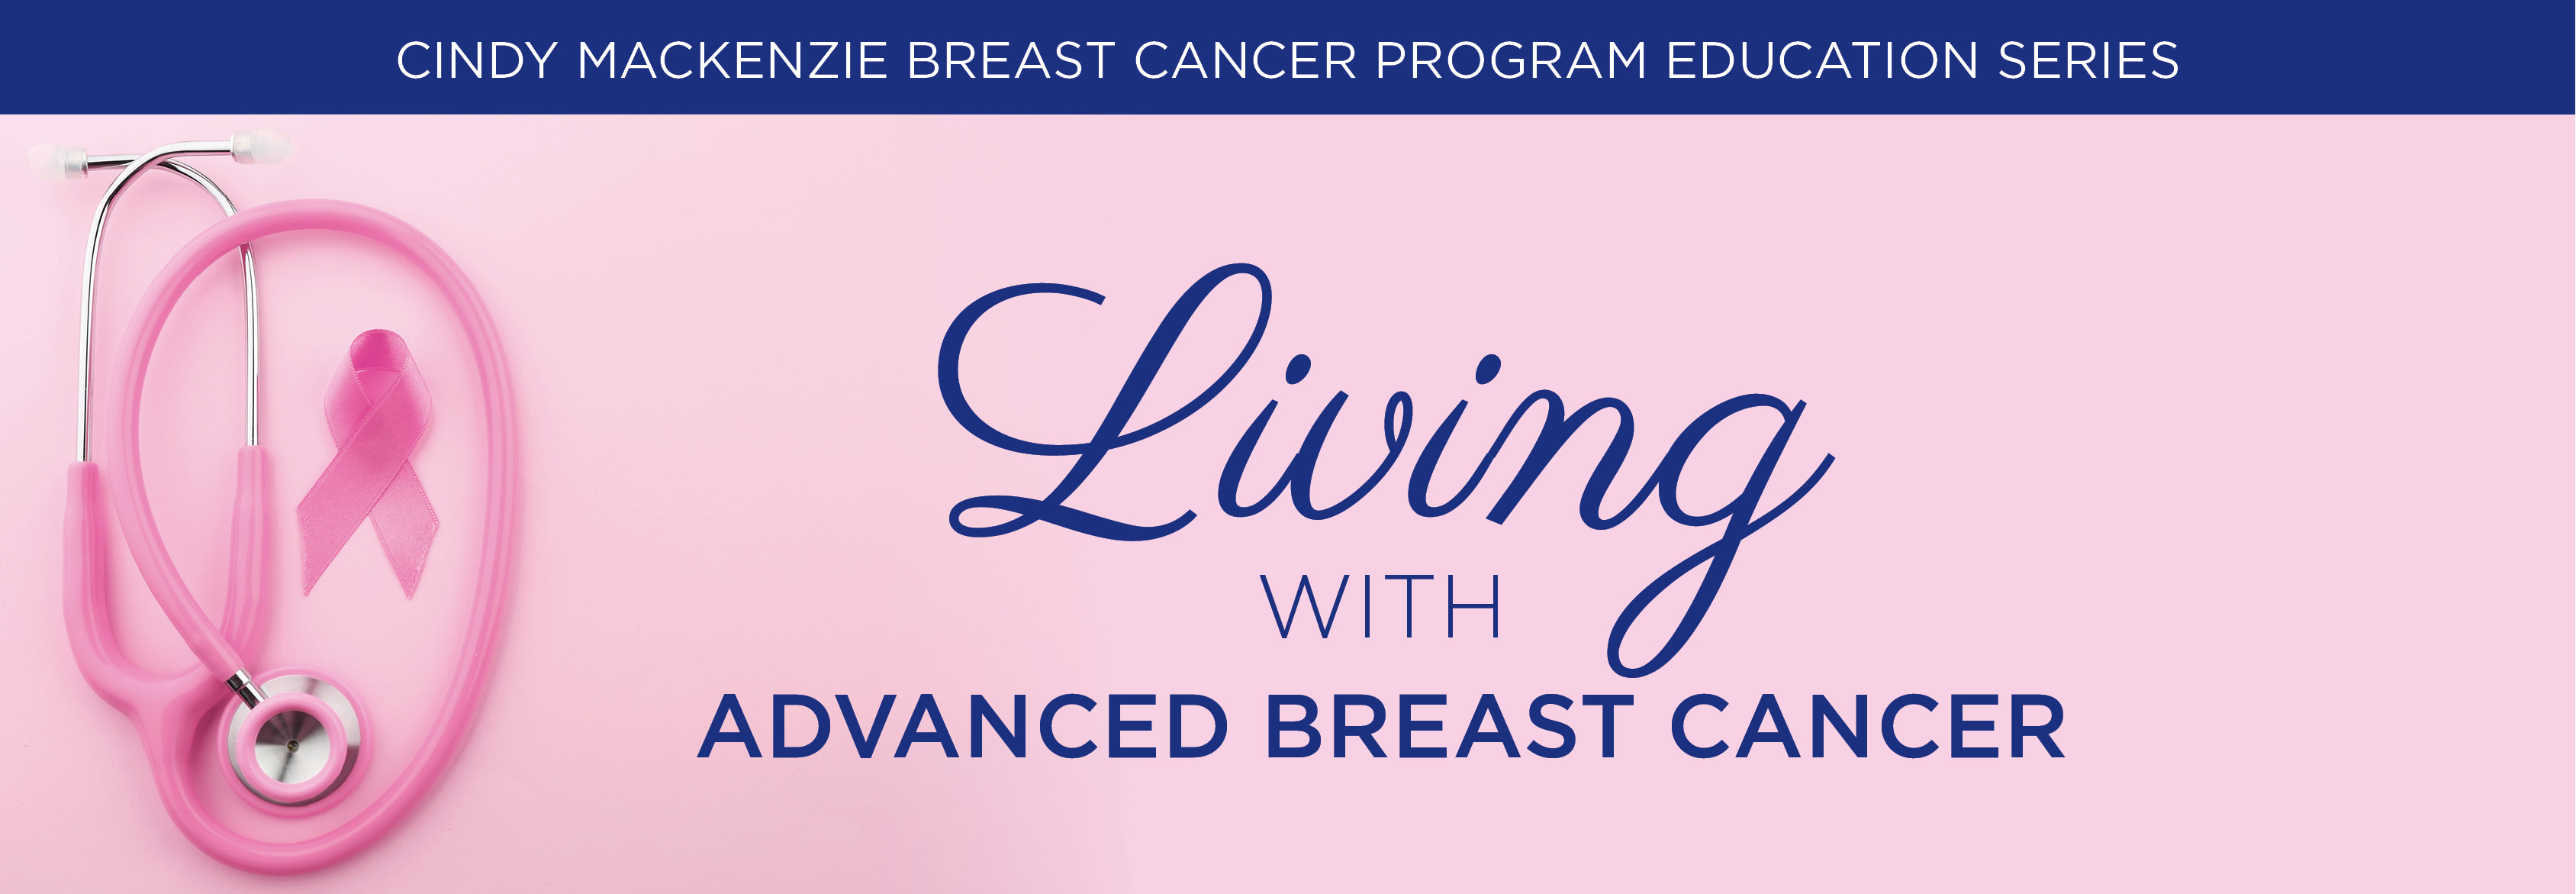 396 Living with advanced breast cancer banner